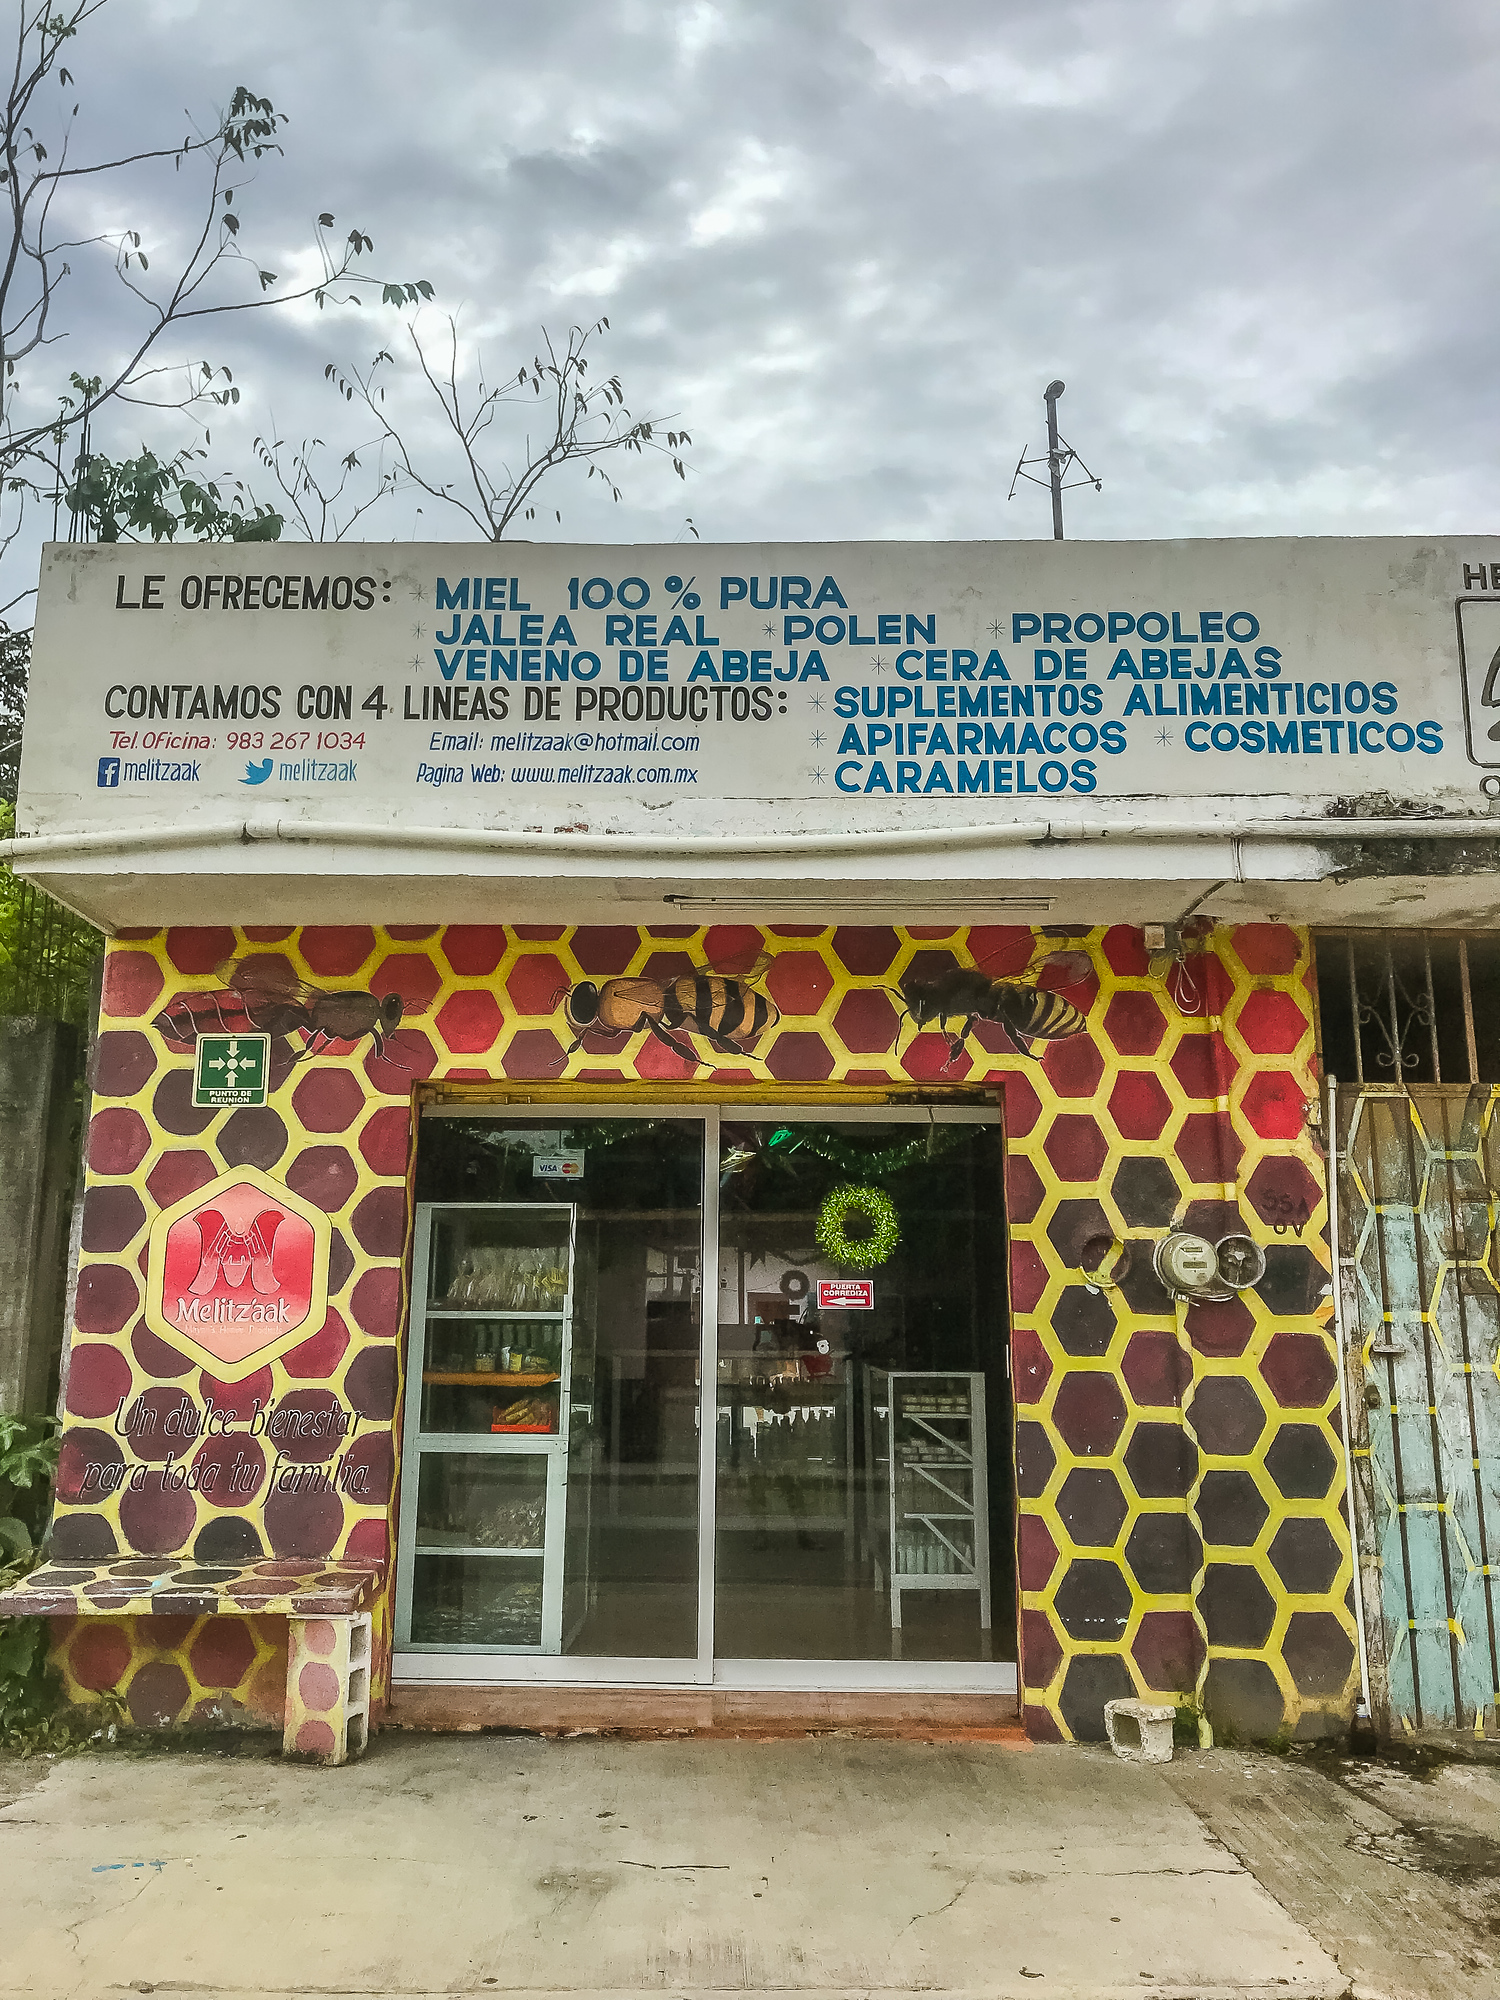 A honey store in Felipe Carrillo Puerto, honey is one of the most important products in this region and is eaten daily and used for soaps and other beauty products.